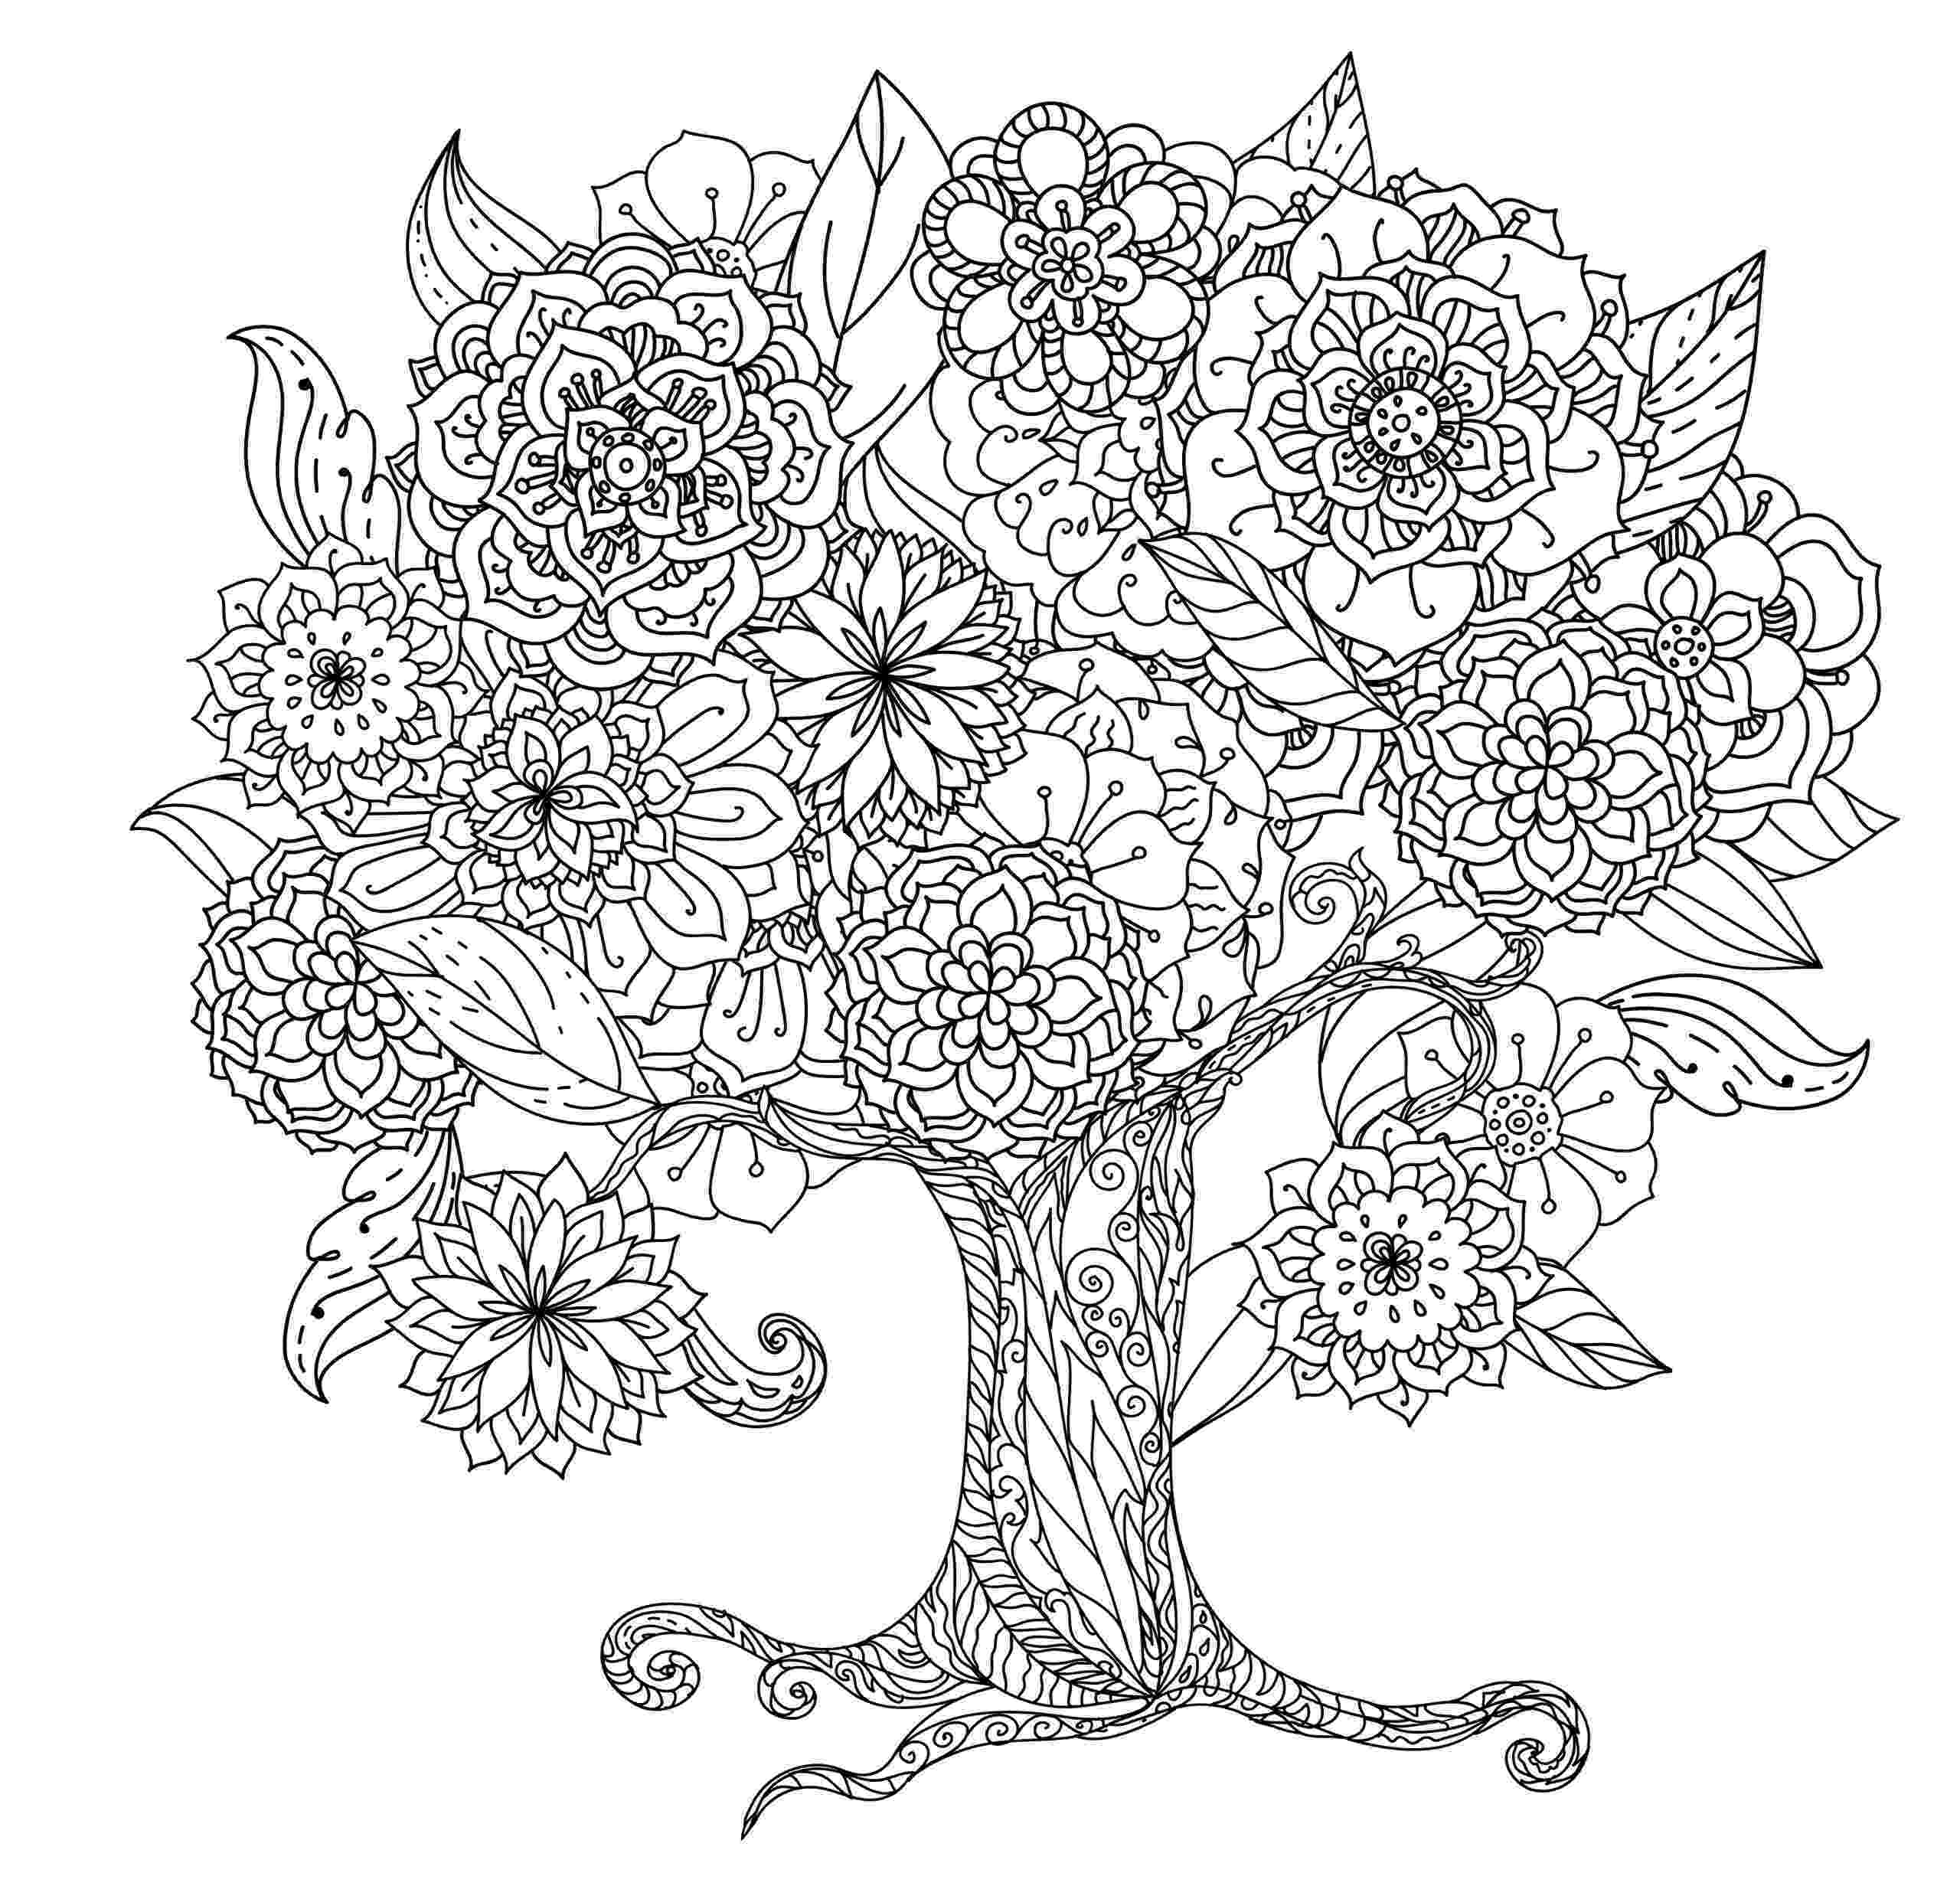 coloring book pages trees free printable tree coloring pages for kids cool2bkids pages coloring trees book 1 1